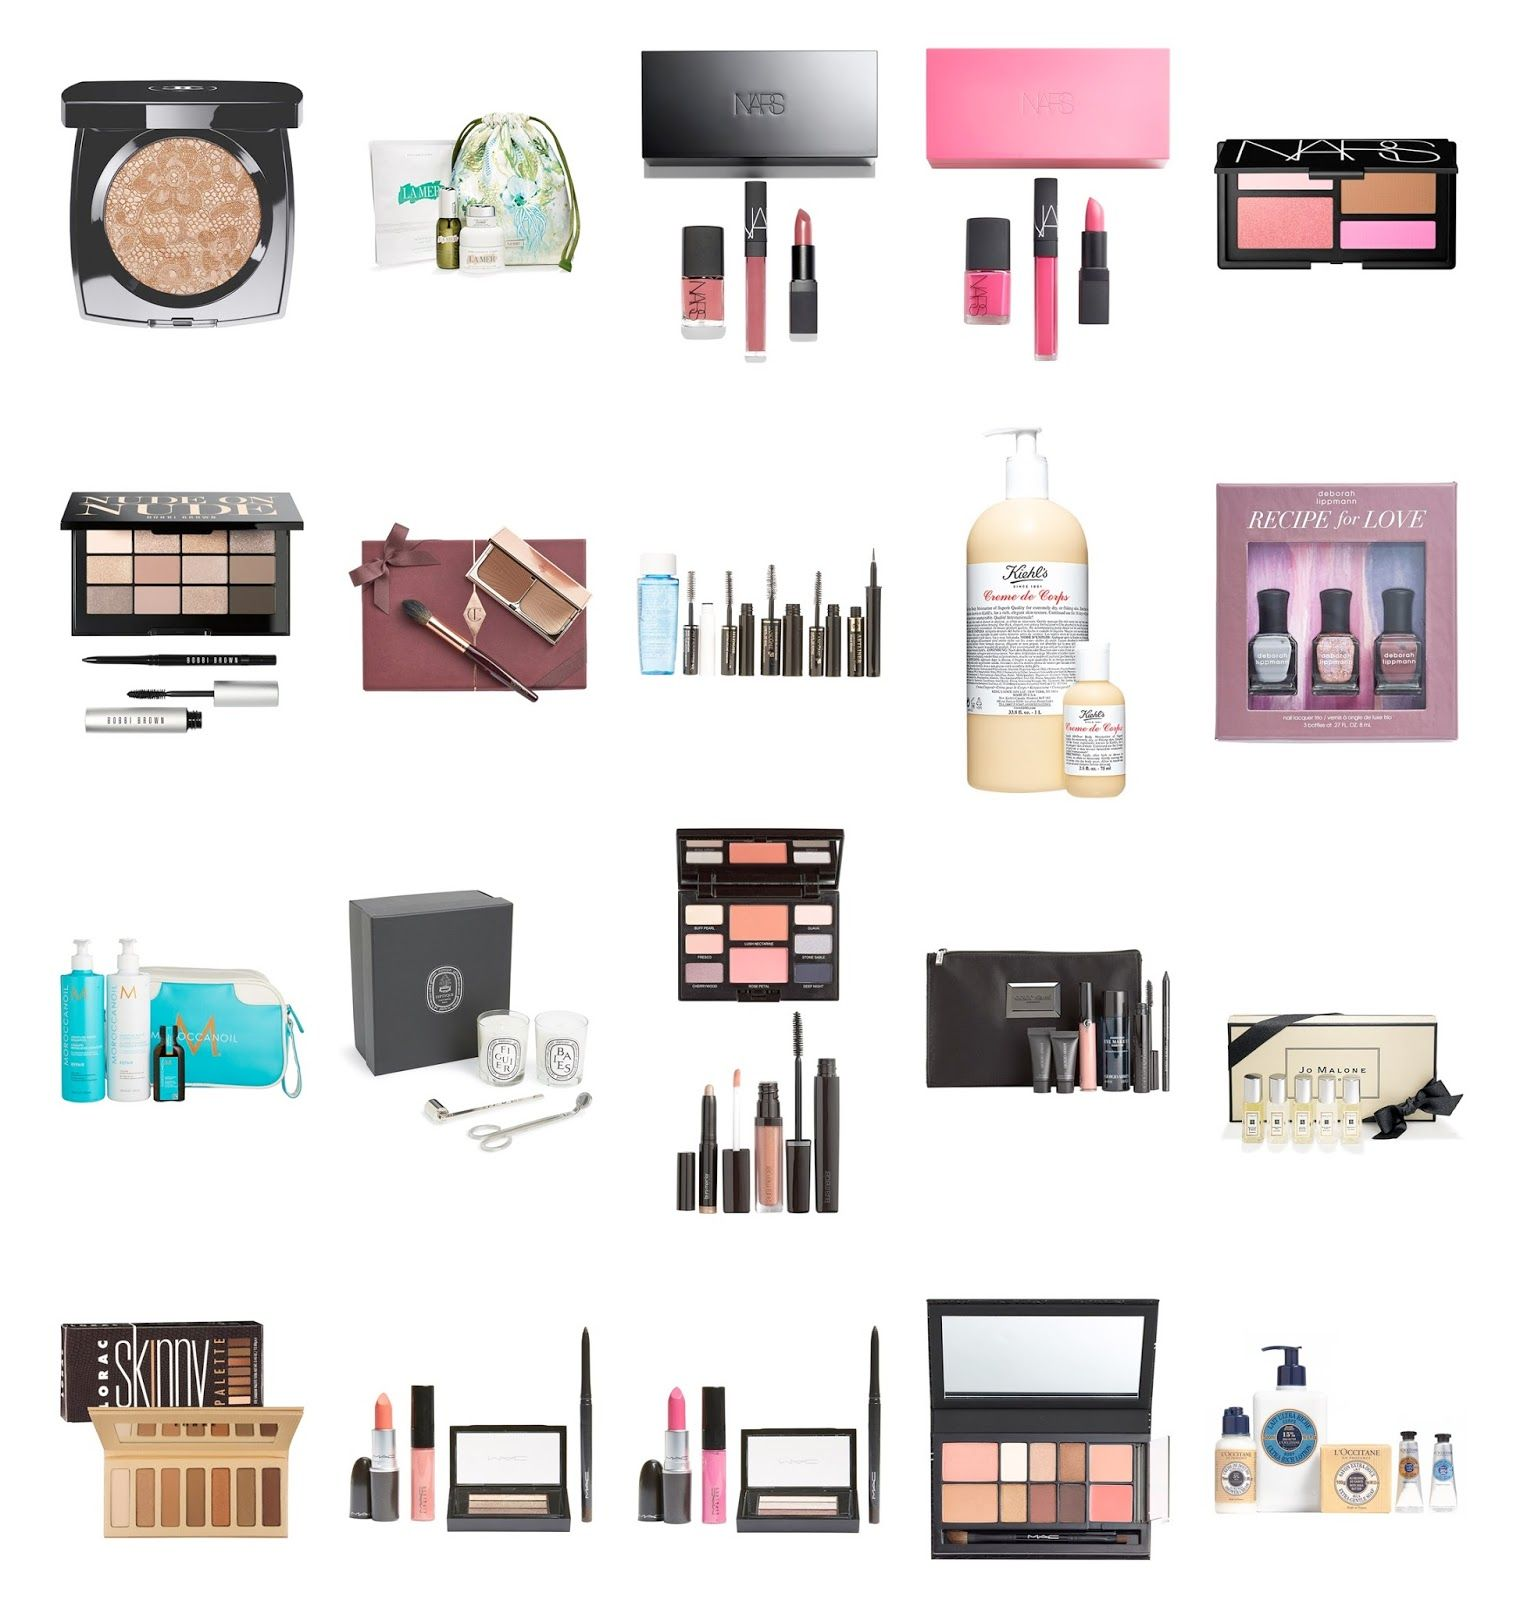 Pin by jkharmon1000 on Makeup Gift with Purchase, Promos